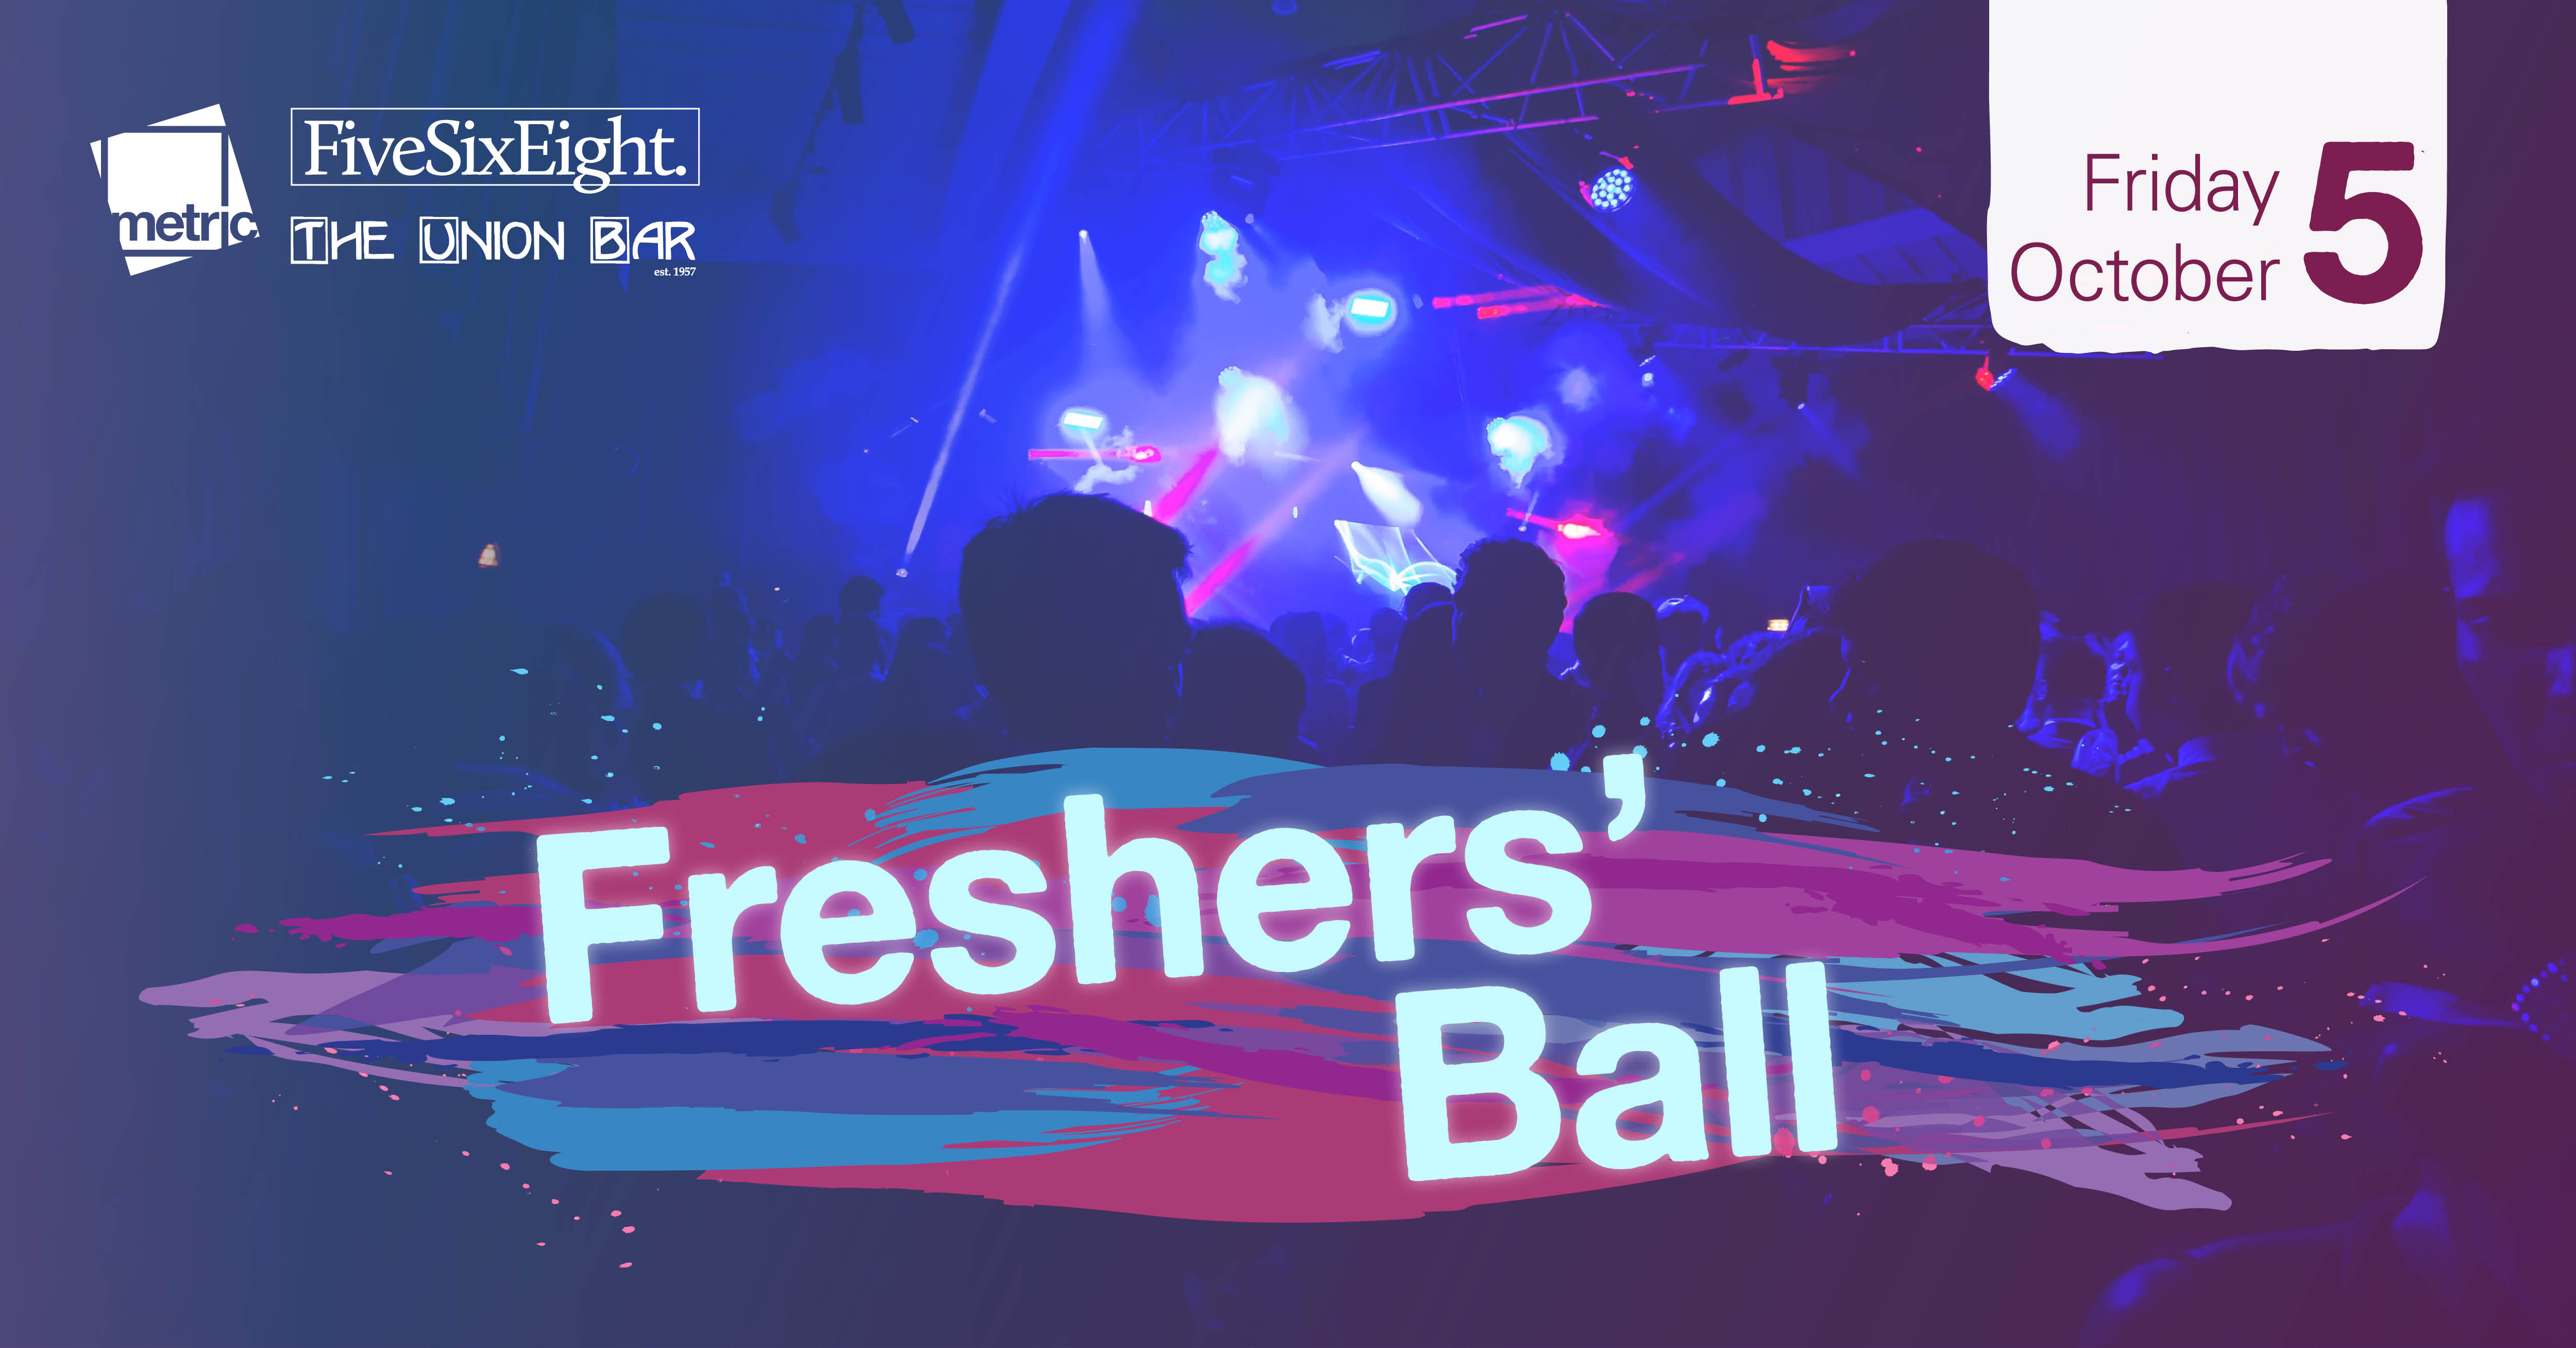 Fresher's Ball Friday 5 October 2018